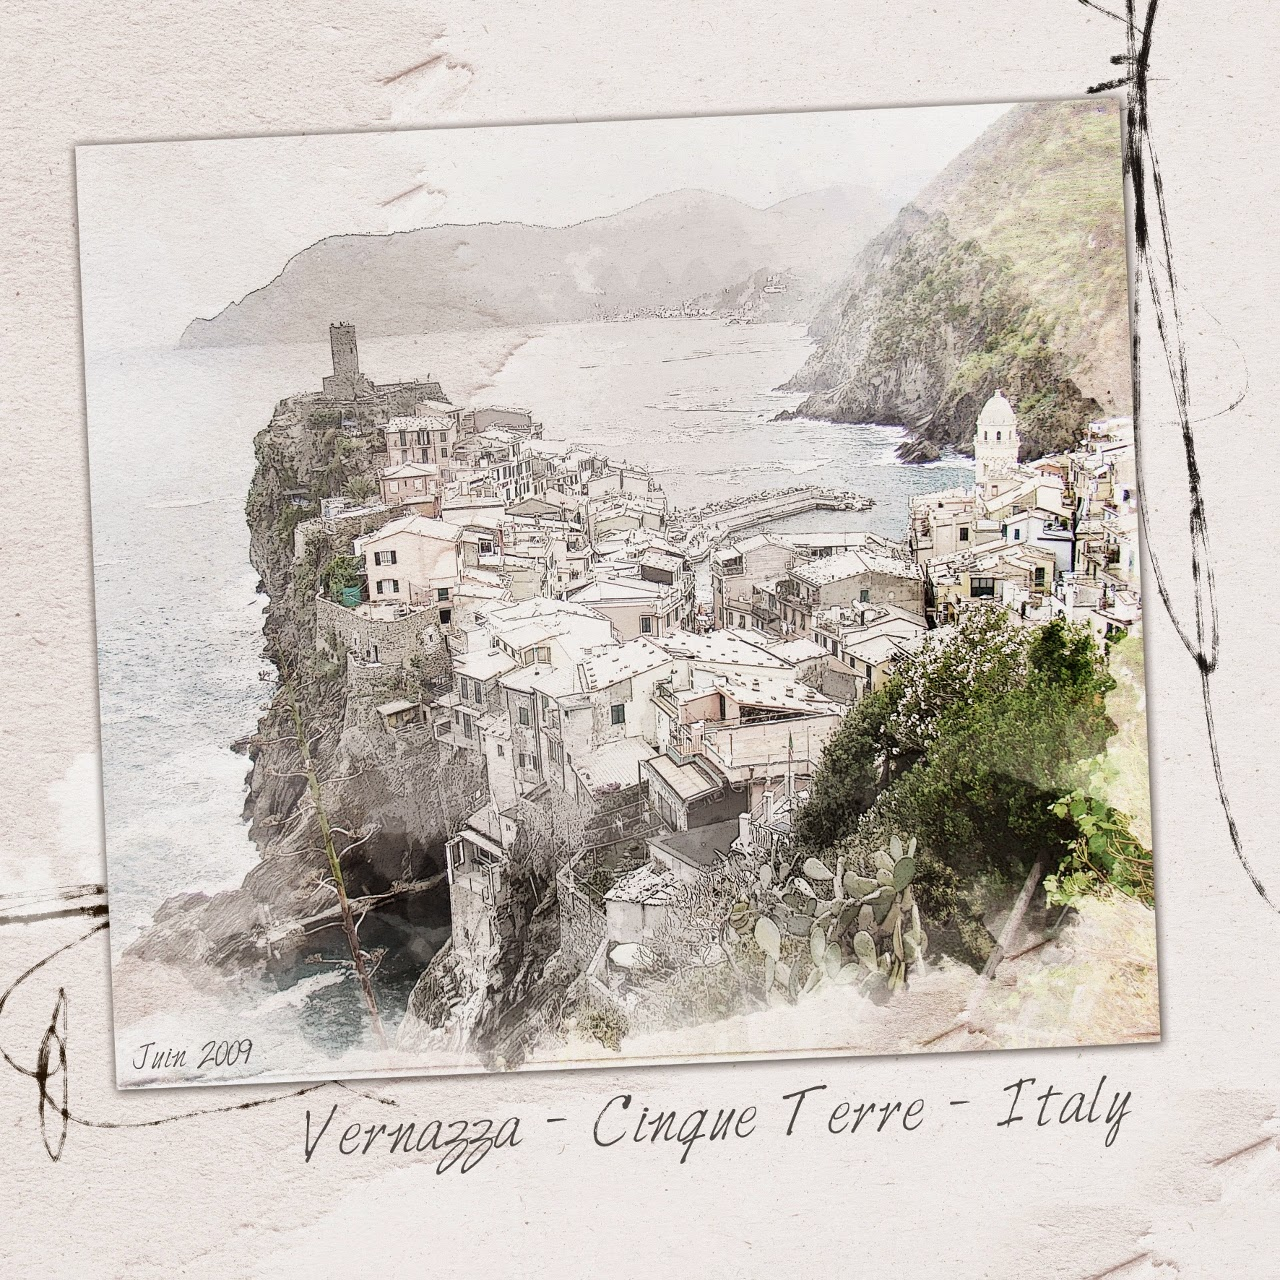 Vernazza Cinque terre scrap digital clin doeil design